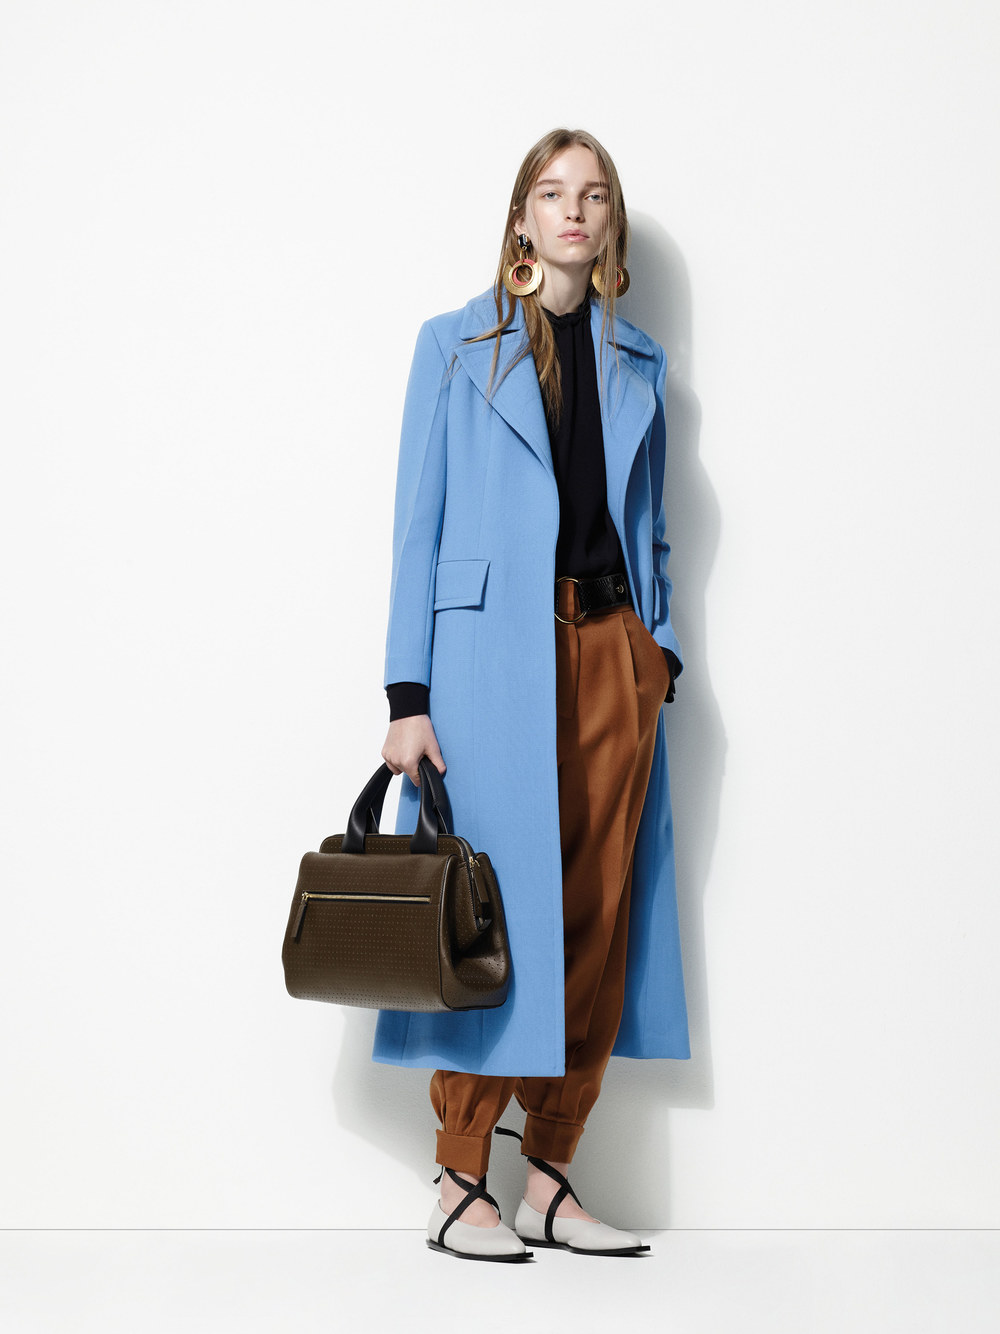 marni-pre-fall-2016-lookbook-09.jpg